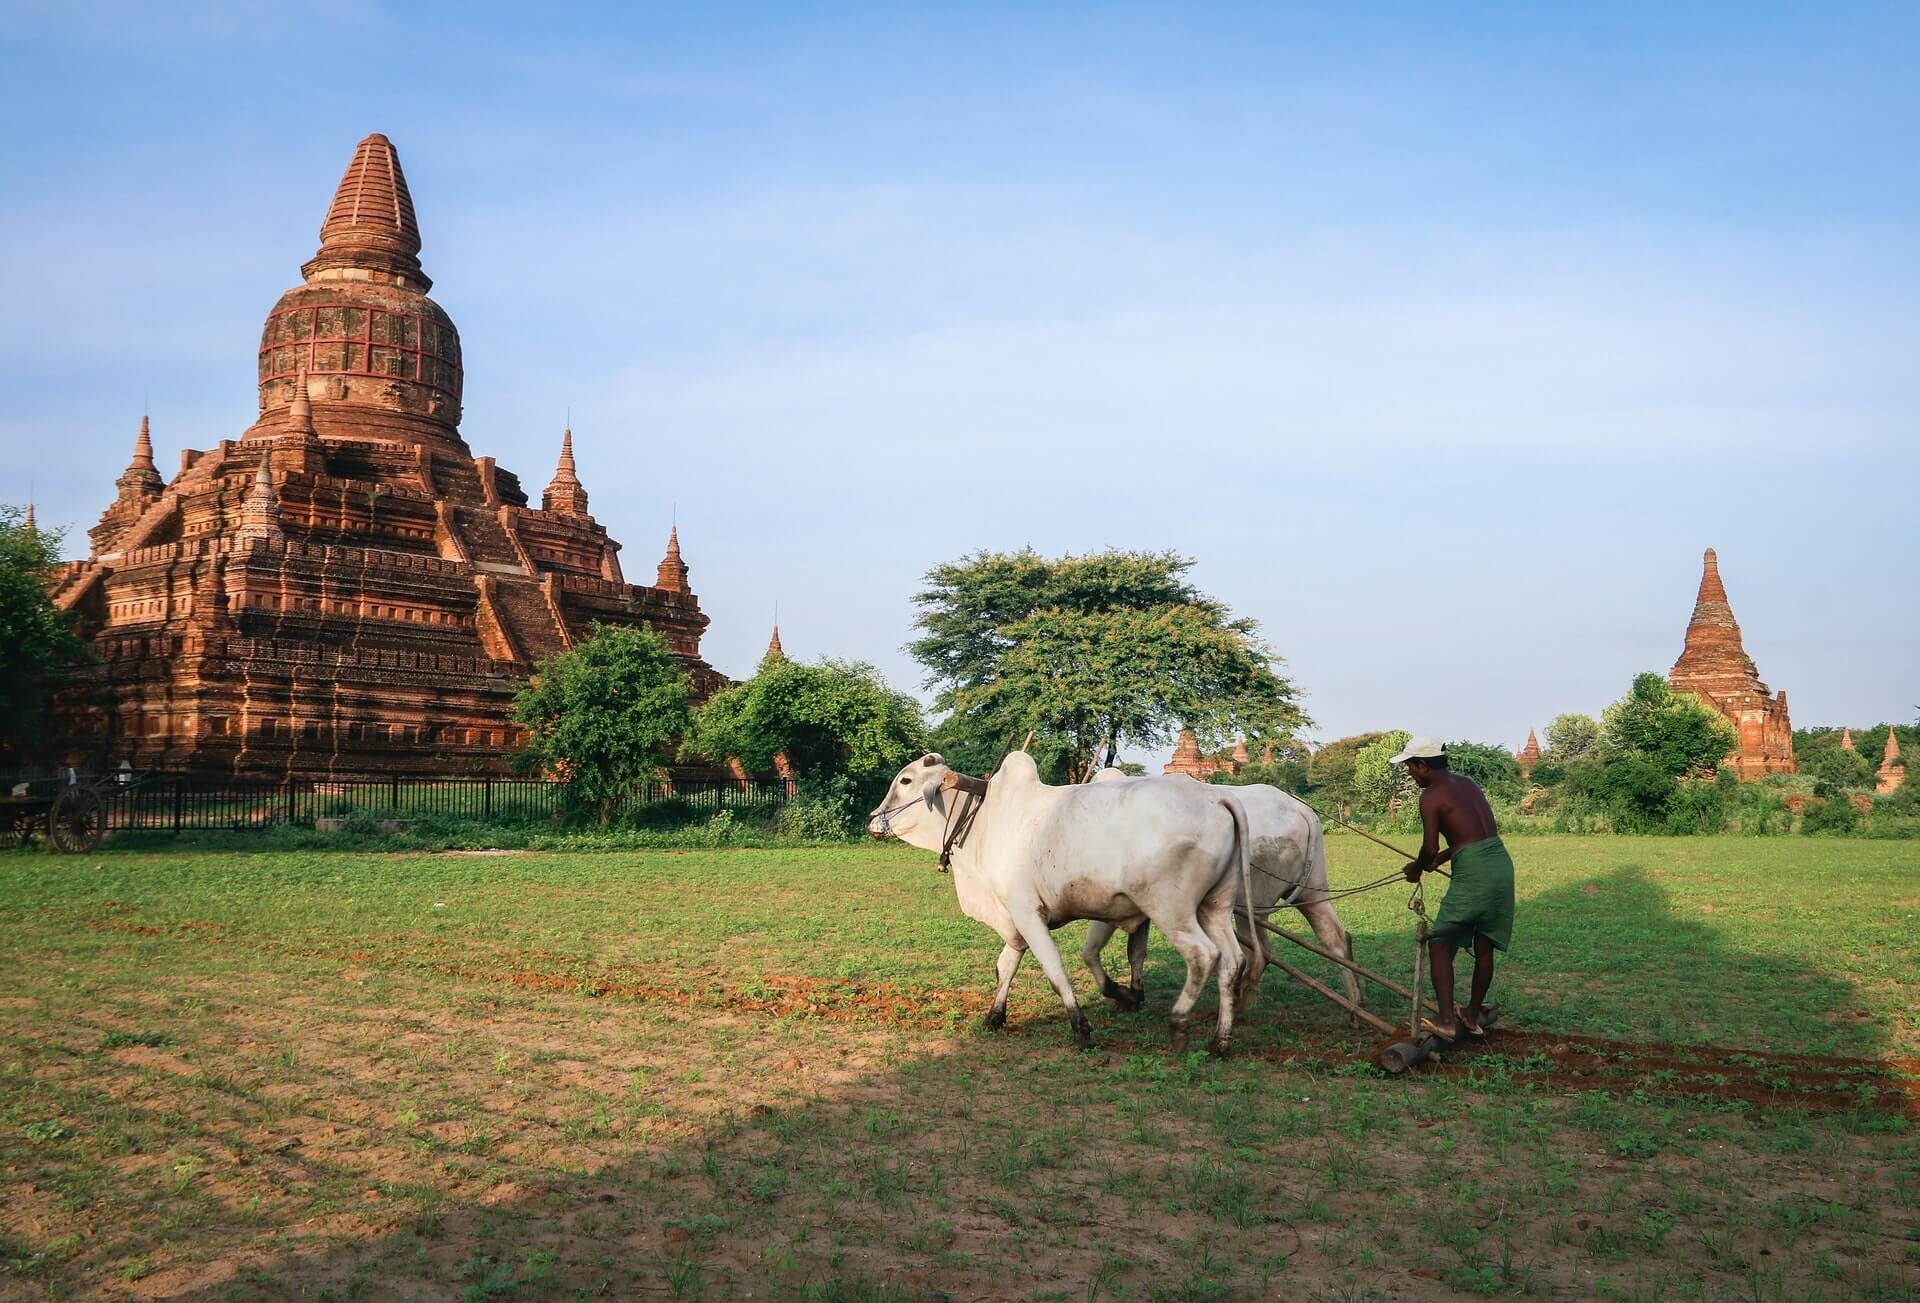 A farmer in Bagan works a field near an old temple